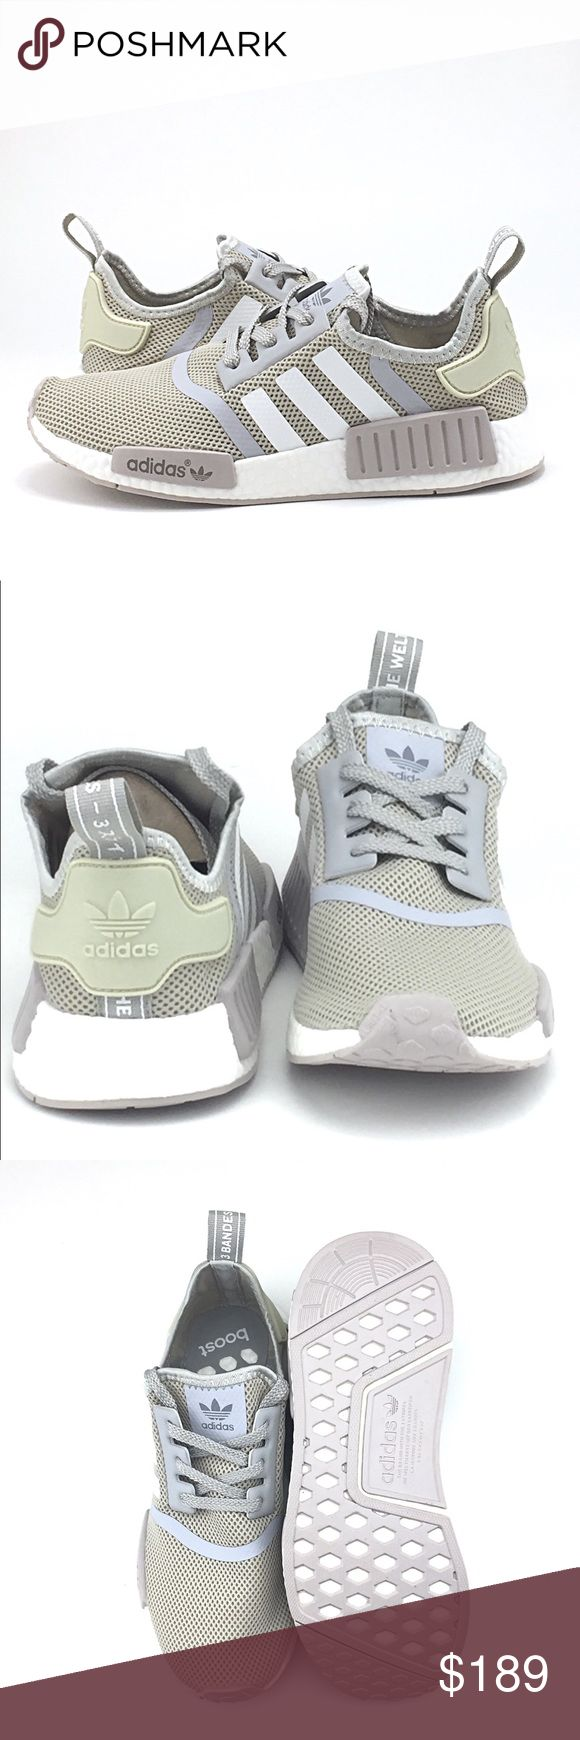 Adidas NMD r1 Sneakers NWB, Adidas NMD r1 Sneakers, Women's US 7.5, Colorway:  Talc/Off-White.  Selling for my Sister-in-law, price is firm. adidas Shoes Sneakers